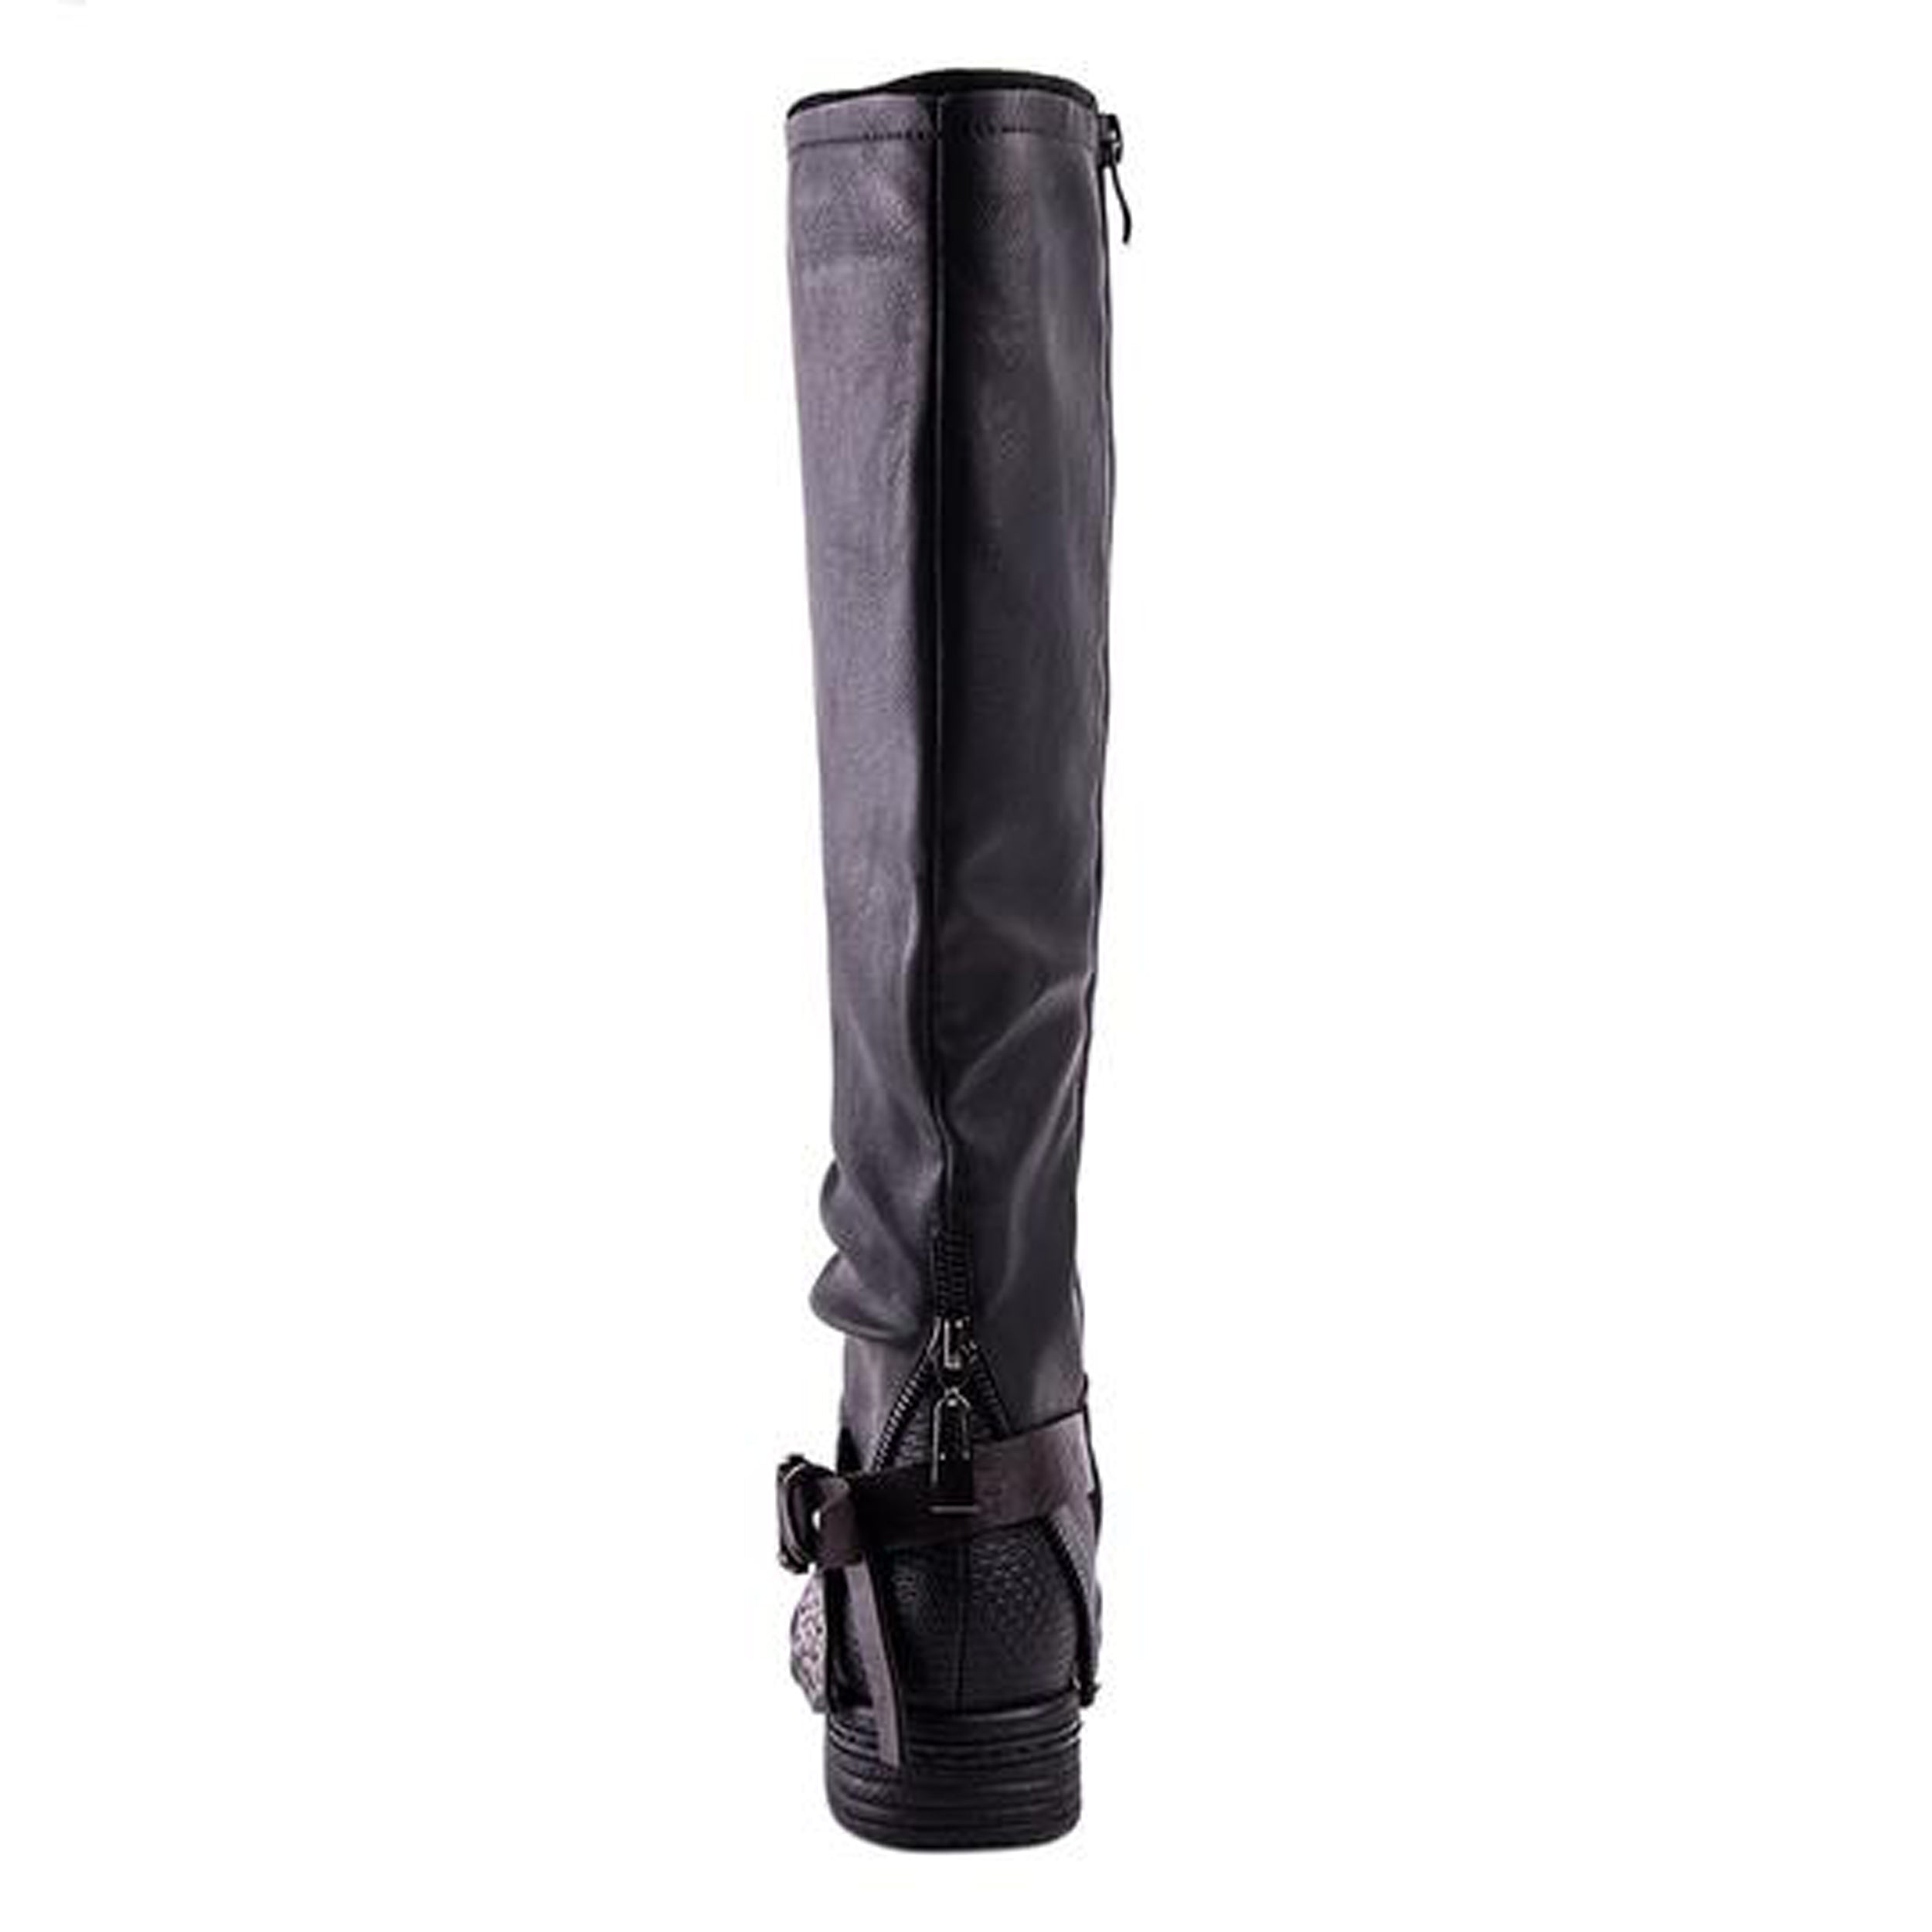 Minky - Knee High Buckled Boot - Izzabel